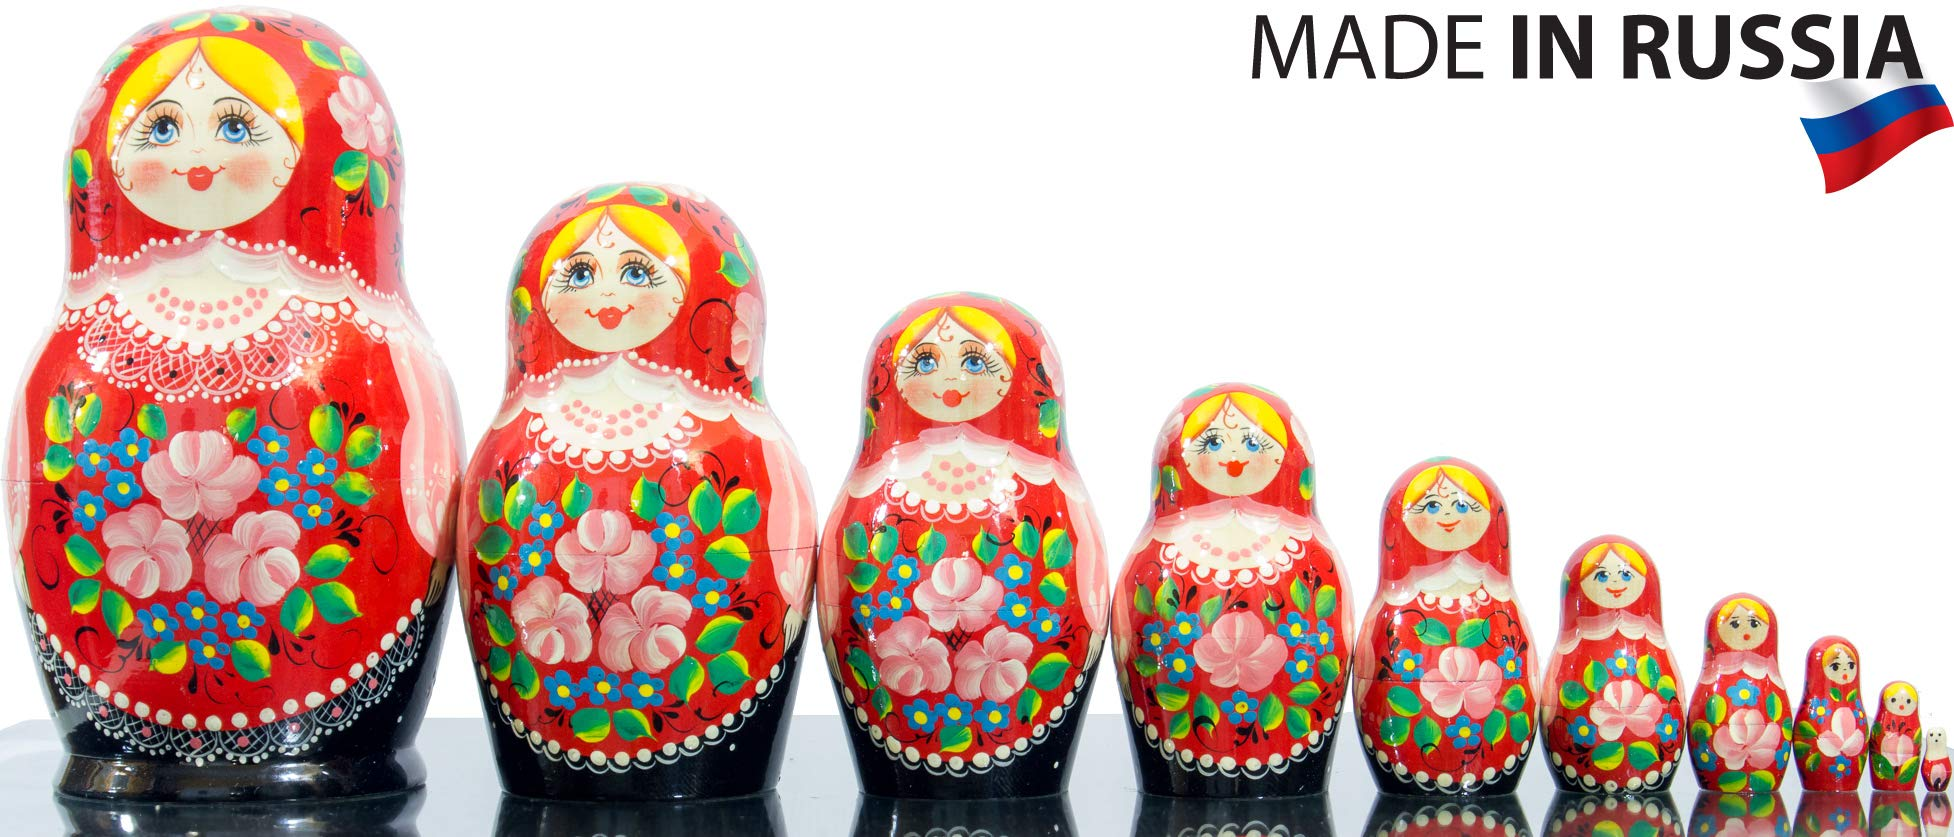 Russian Nesting Doll - Kirov - VJATKA - Hand Painted in Russia - Big Size - Wooden Decoration Gift Doll - Matryoshka Babushka (Style B, 8.25``(10 Dolls in 1)) by craftsfromrussia (Image #5)